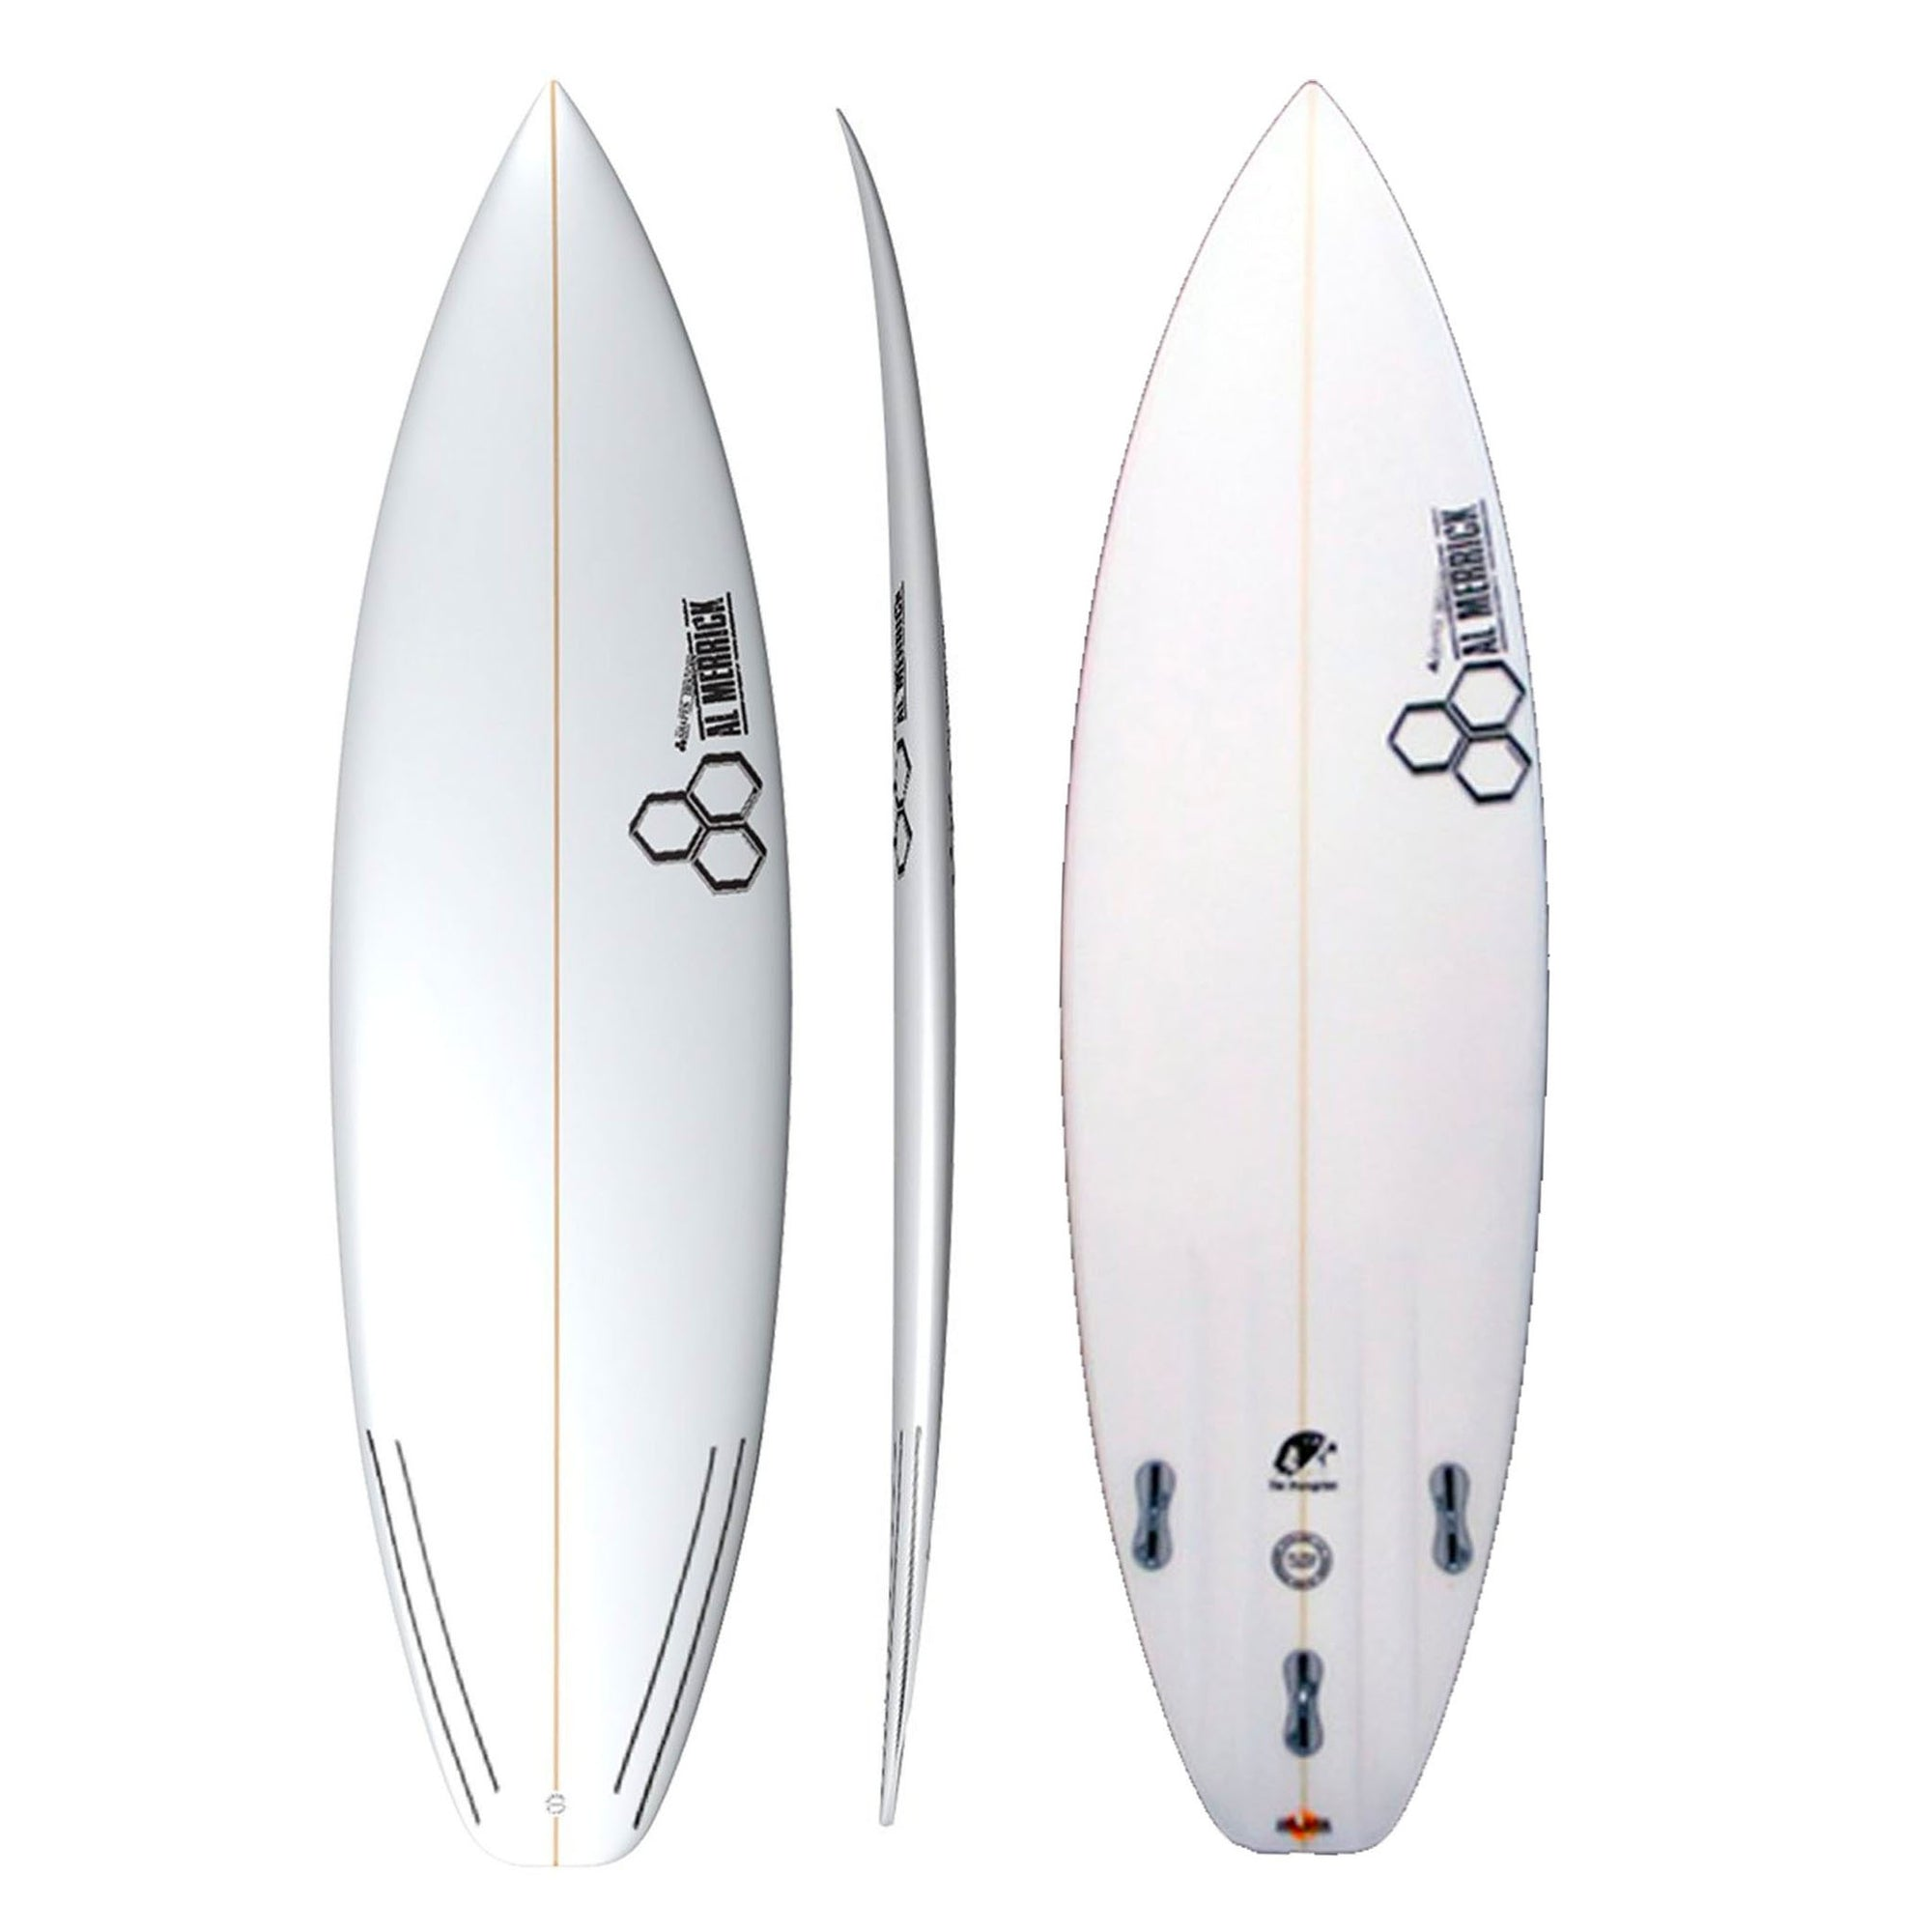 Channel Islands Peregrine Surfboard